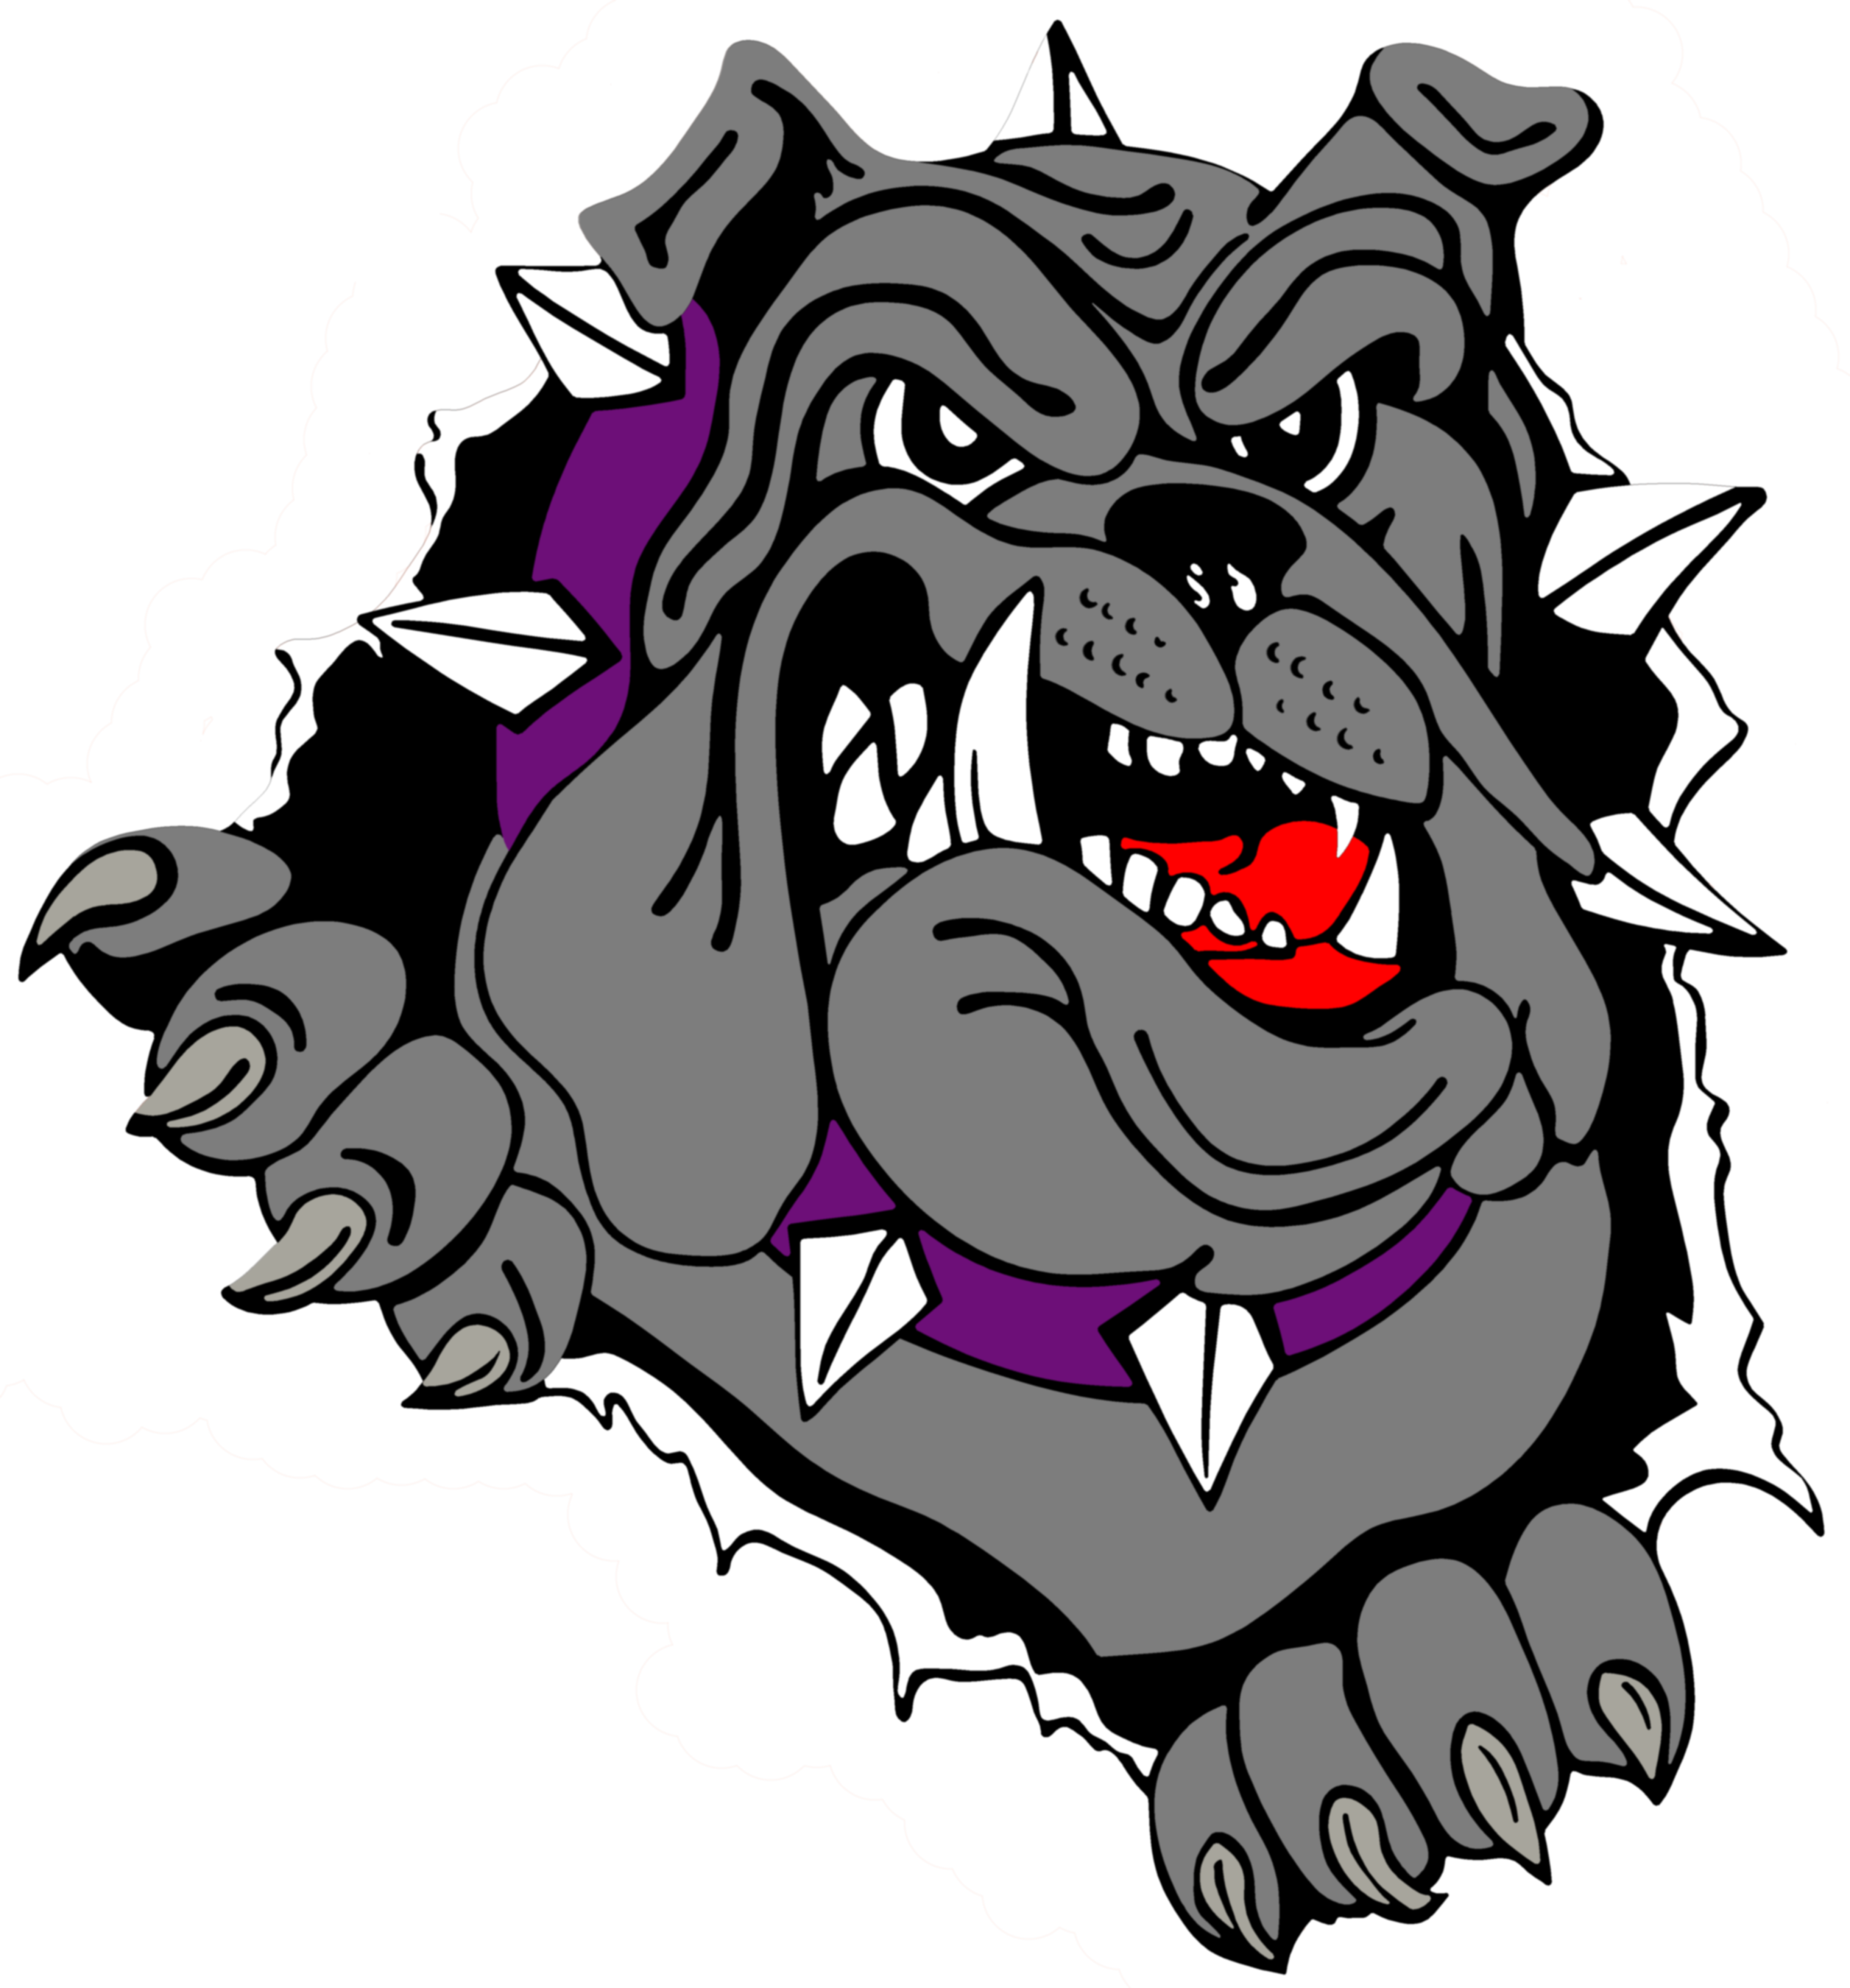 bulldog logo clipart best pitbull logo designs pitbull logistics